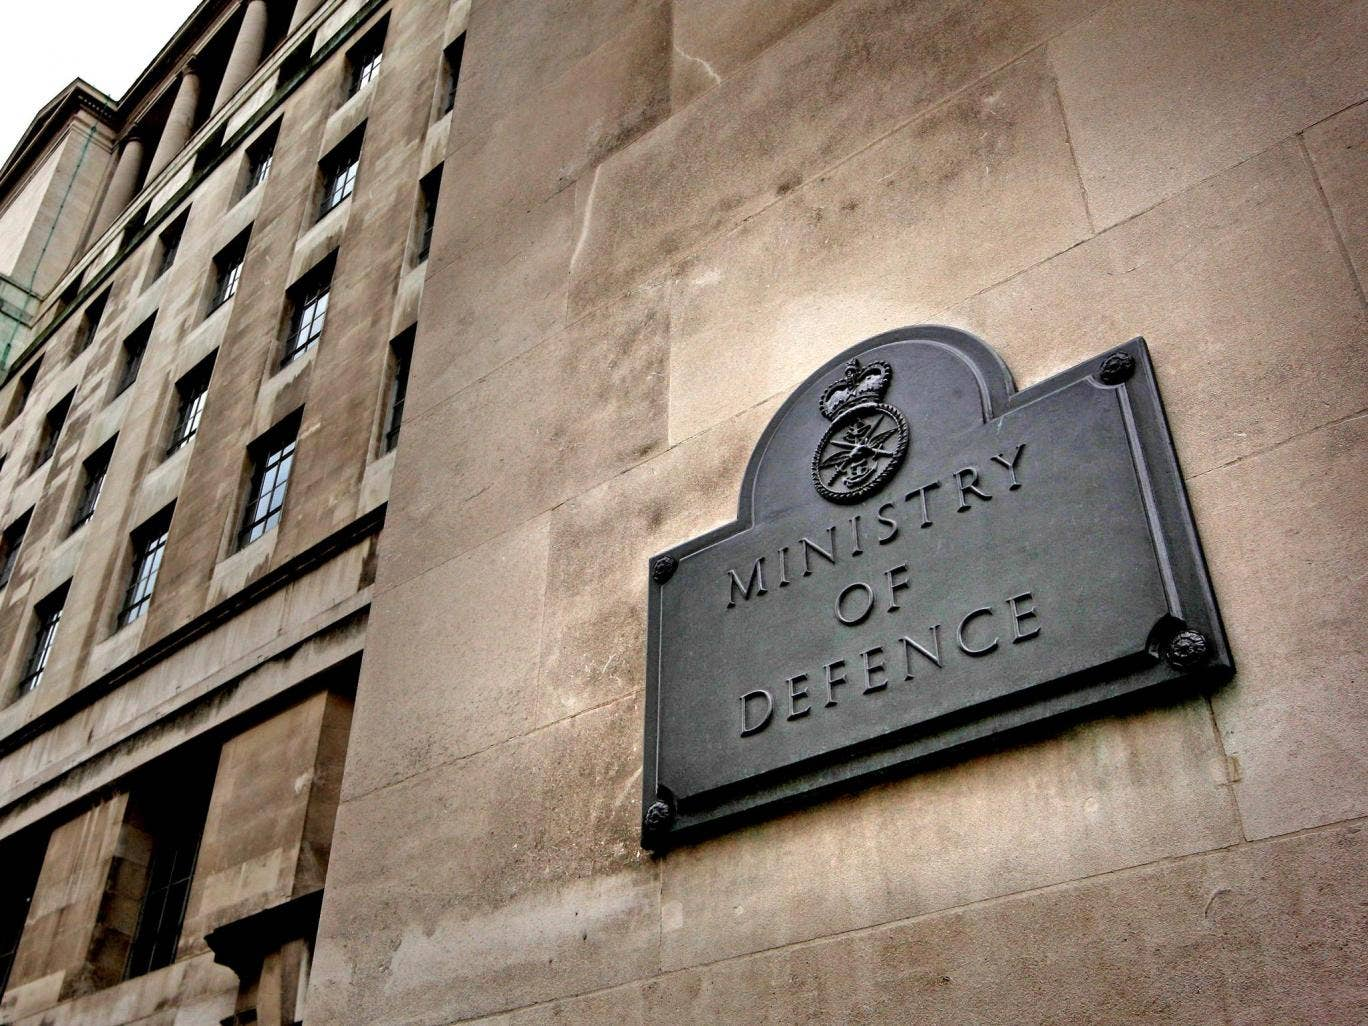 Ministry of Defence building in London